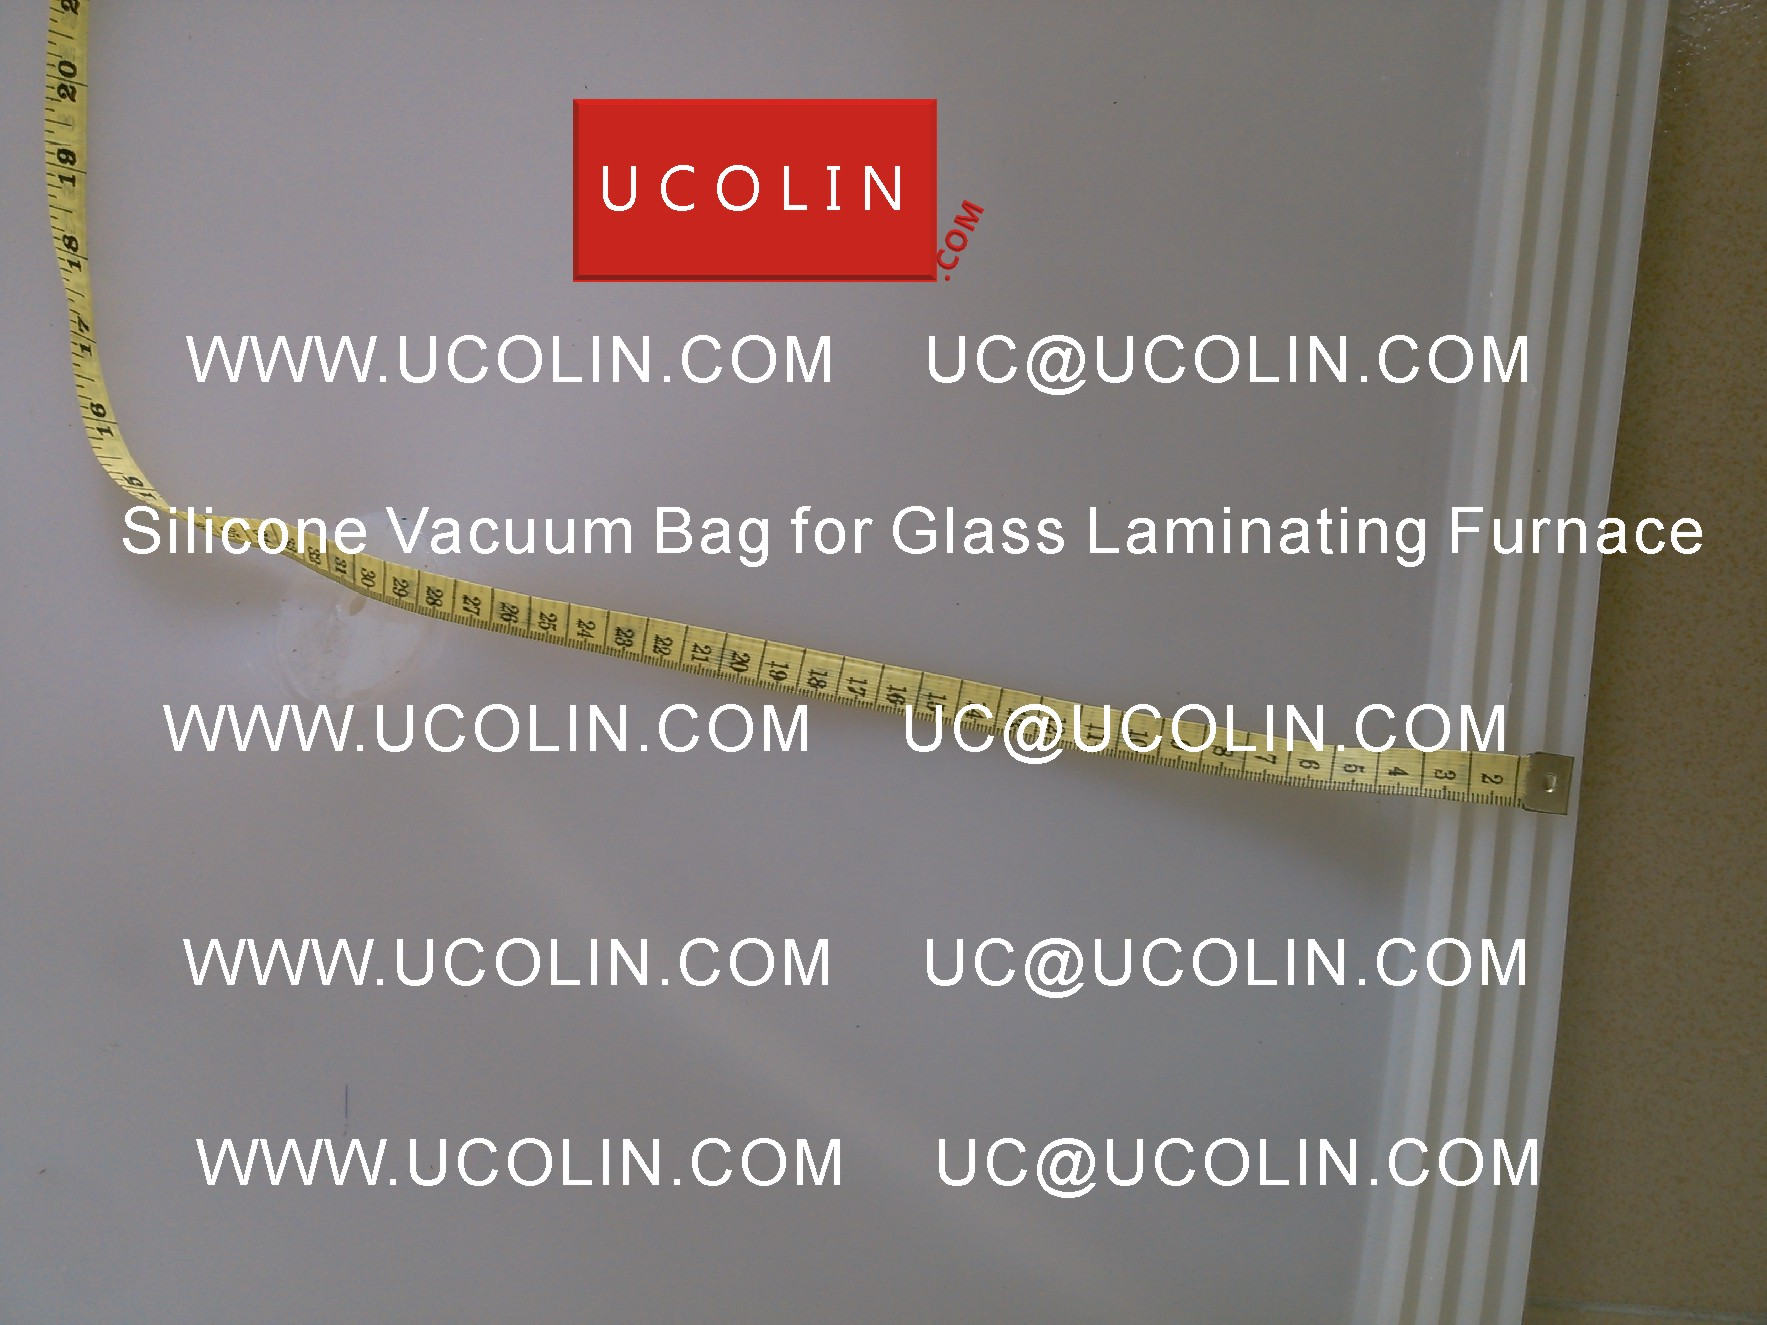 04 Silicone Vacuum Bag for Safety Glass Laminating Furnace